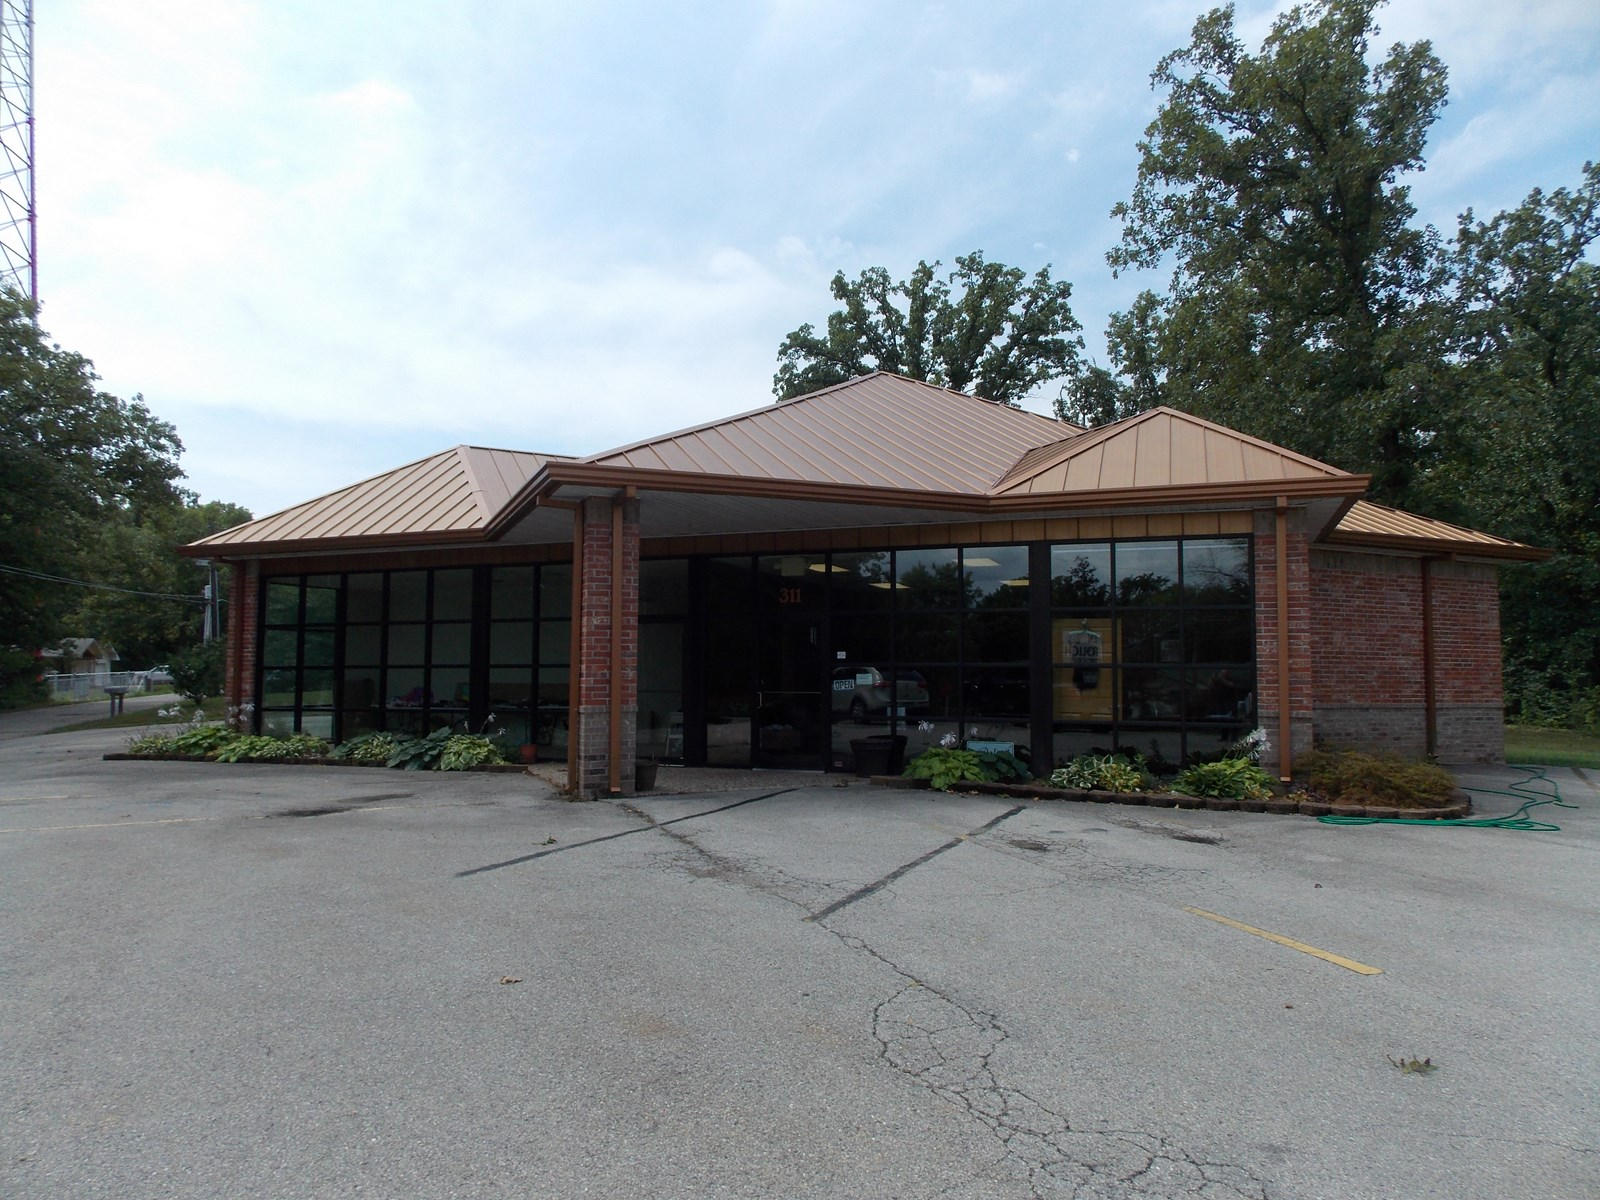 Extravagant Commercial Building for Sale in Ozarks